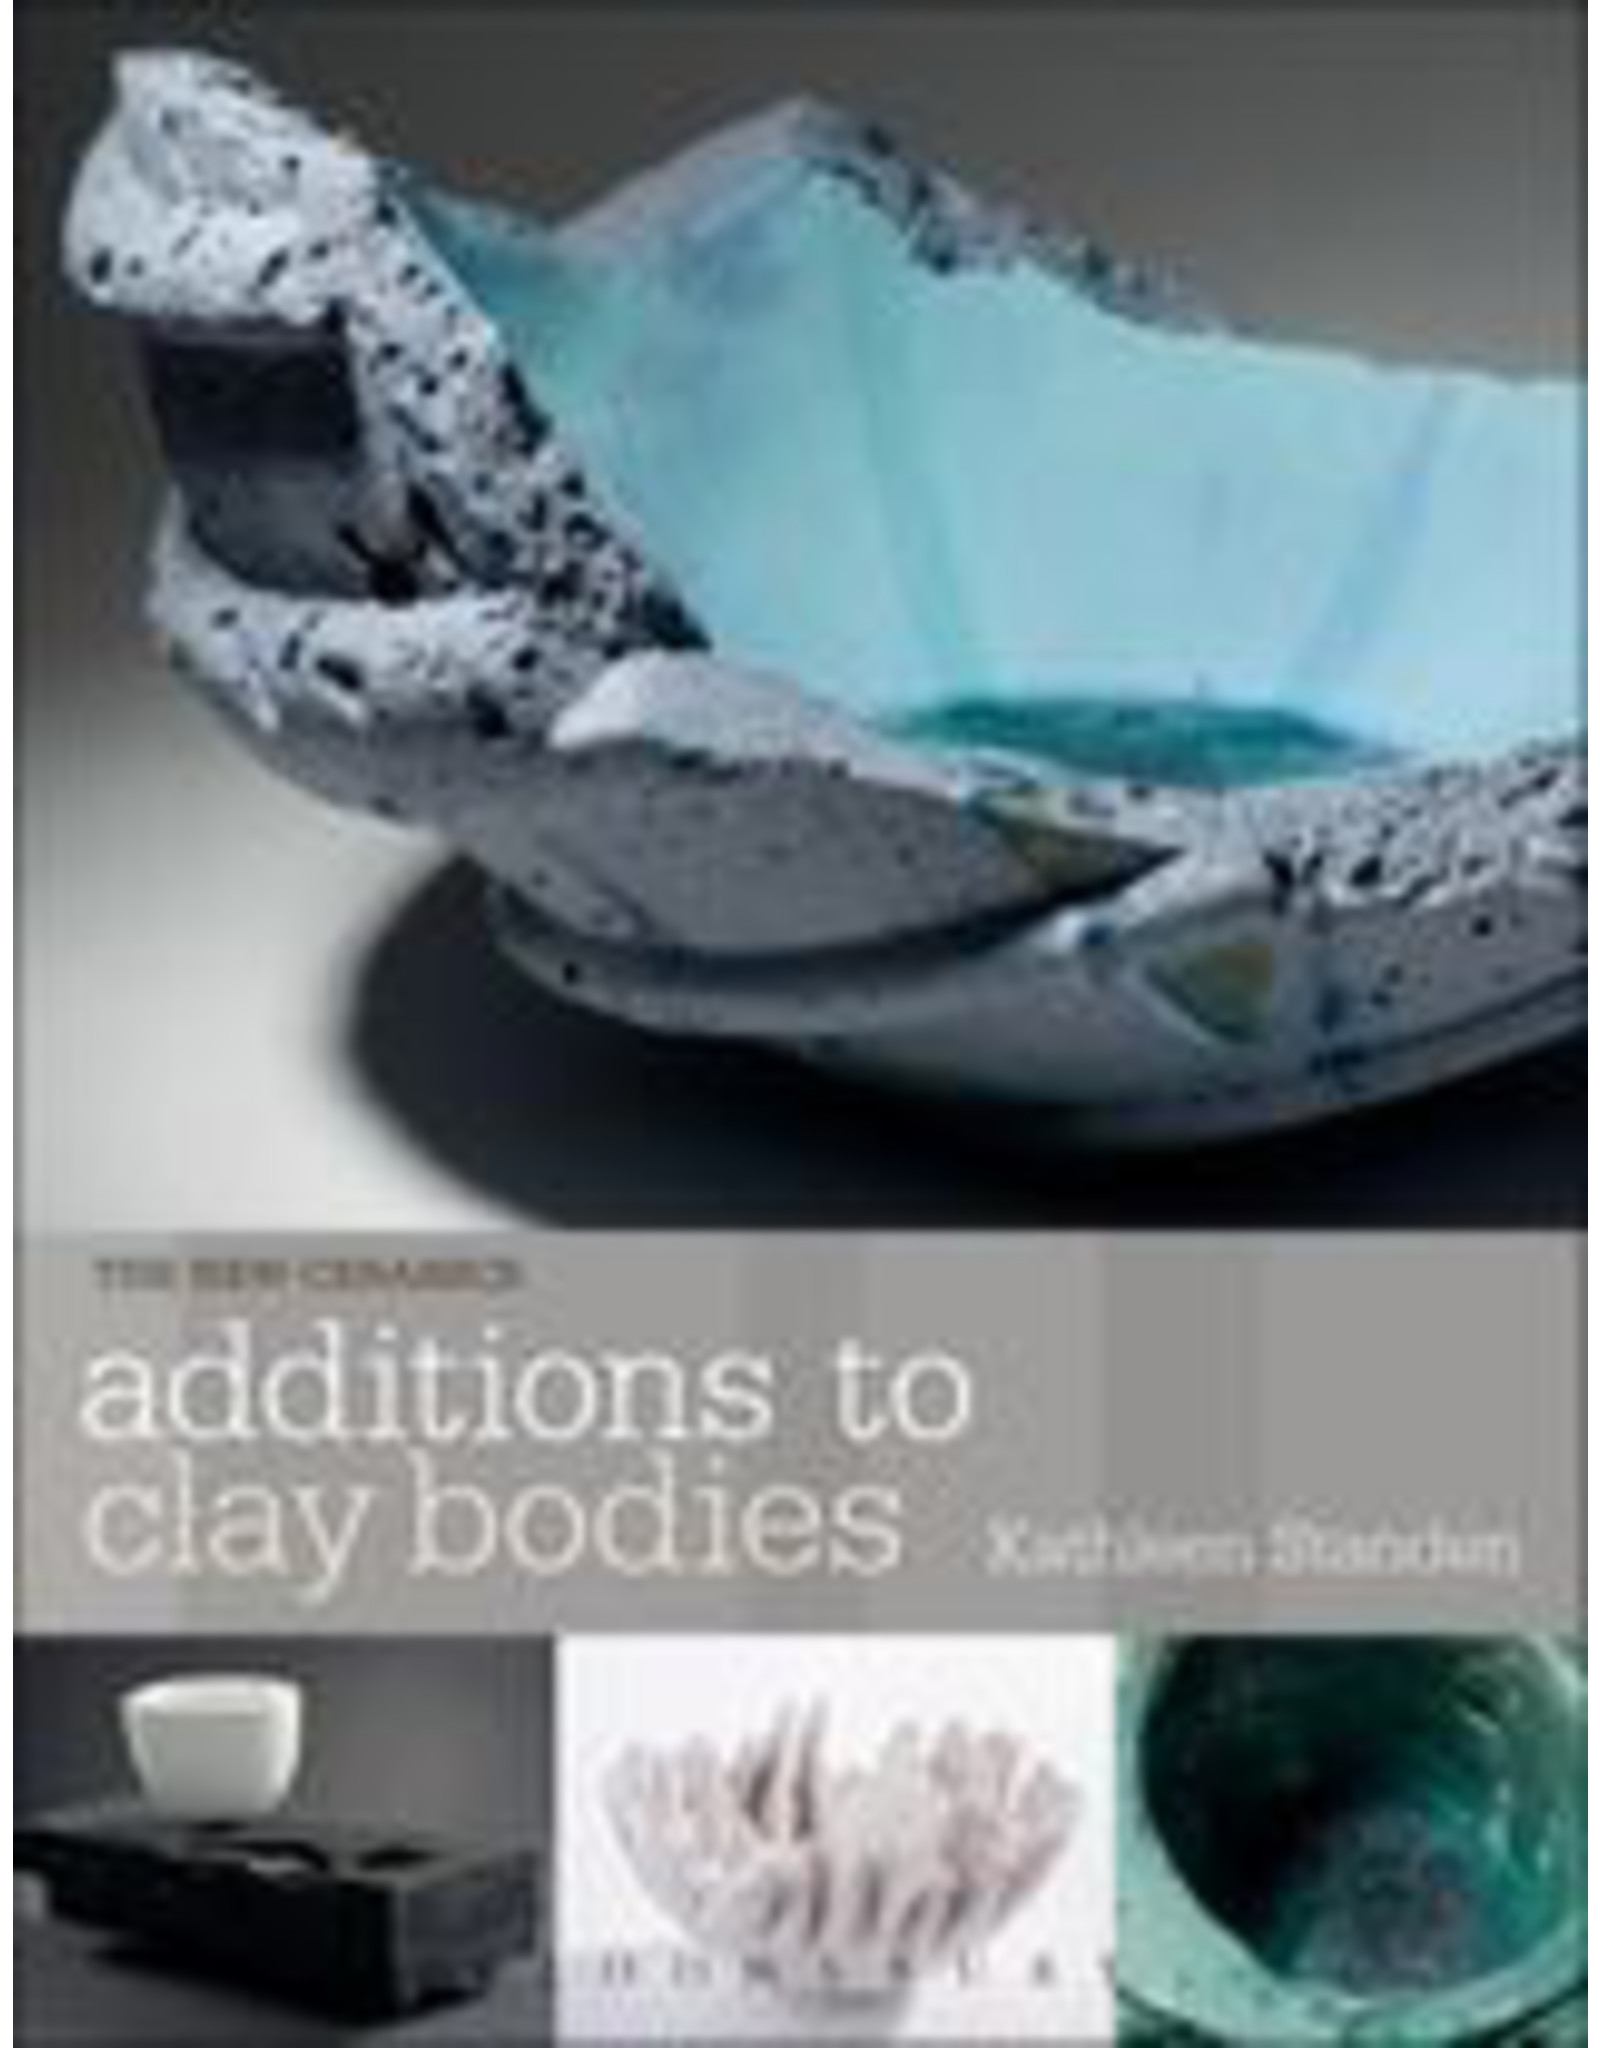 Additions to Clay Bodies: Kathleen Standen